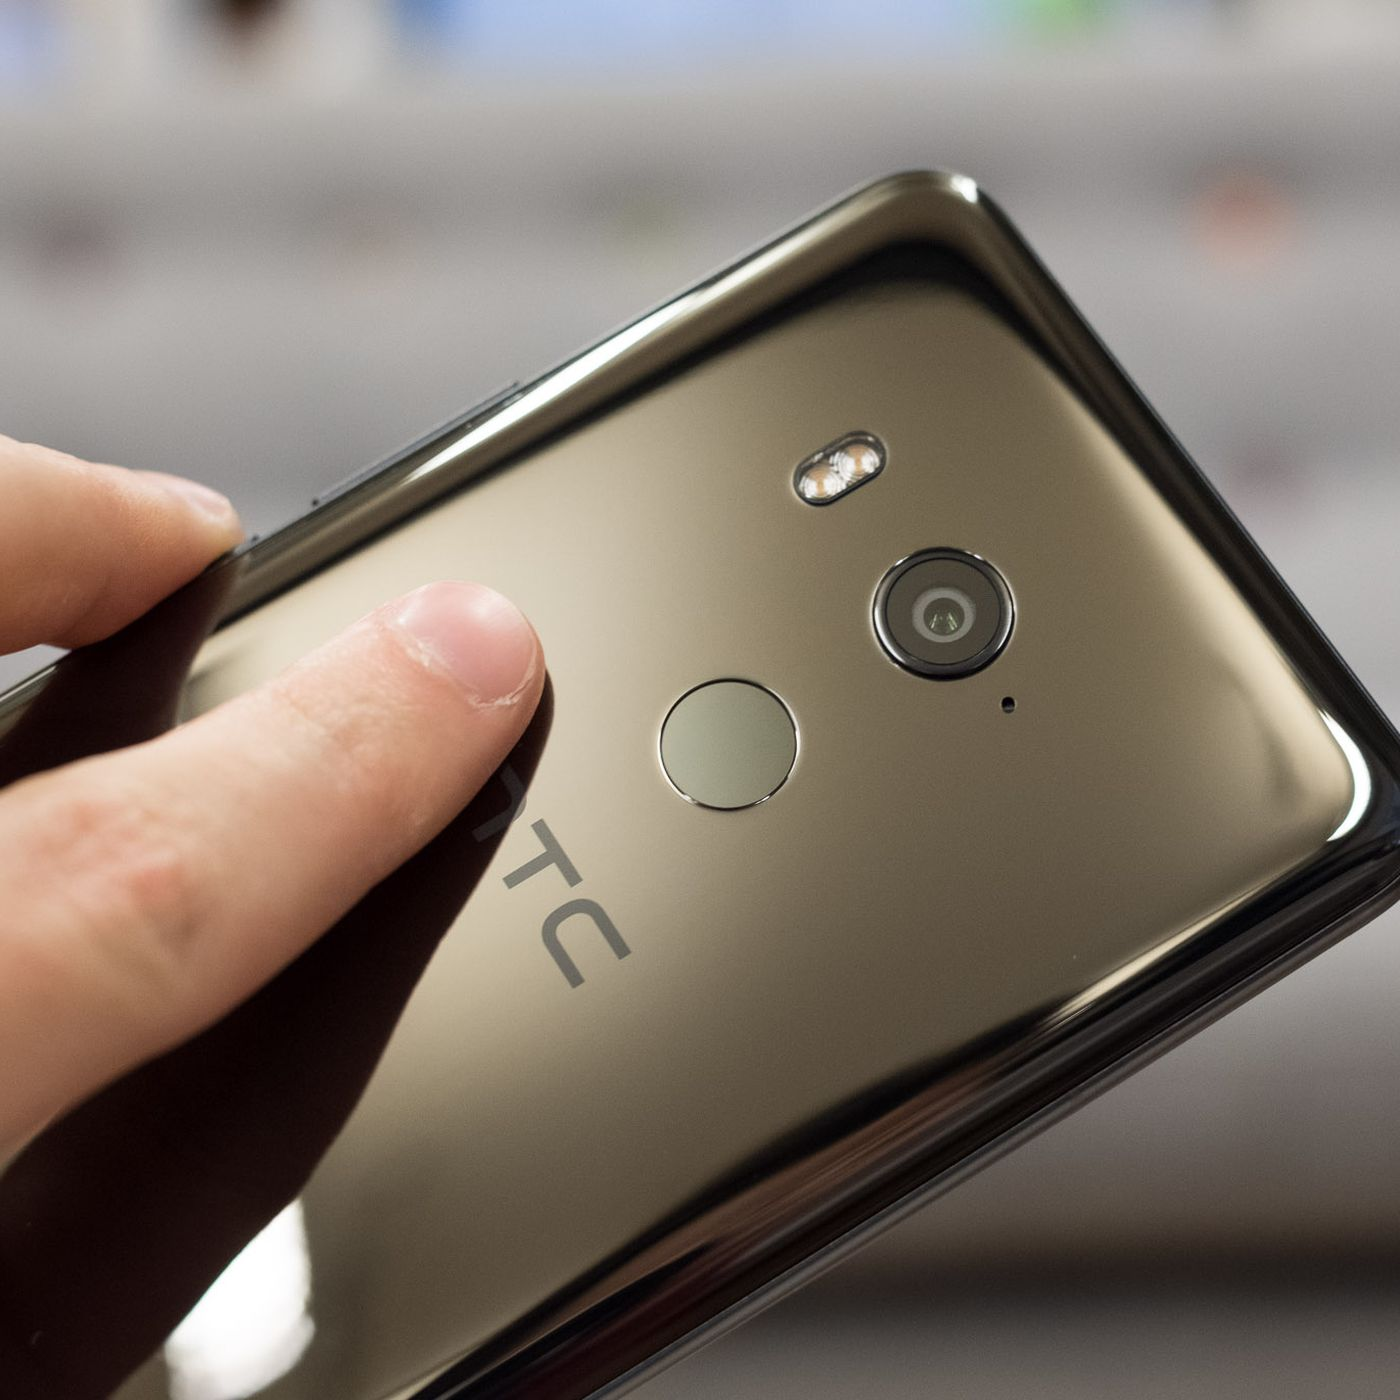 HTC phone chief quits as company prepares for what may be